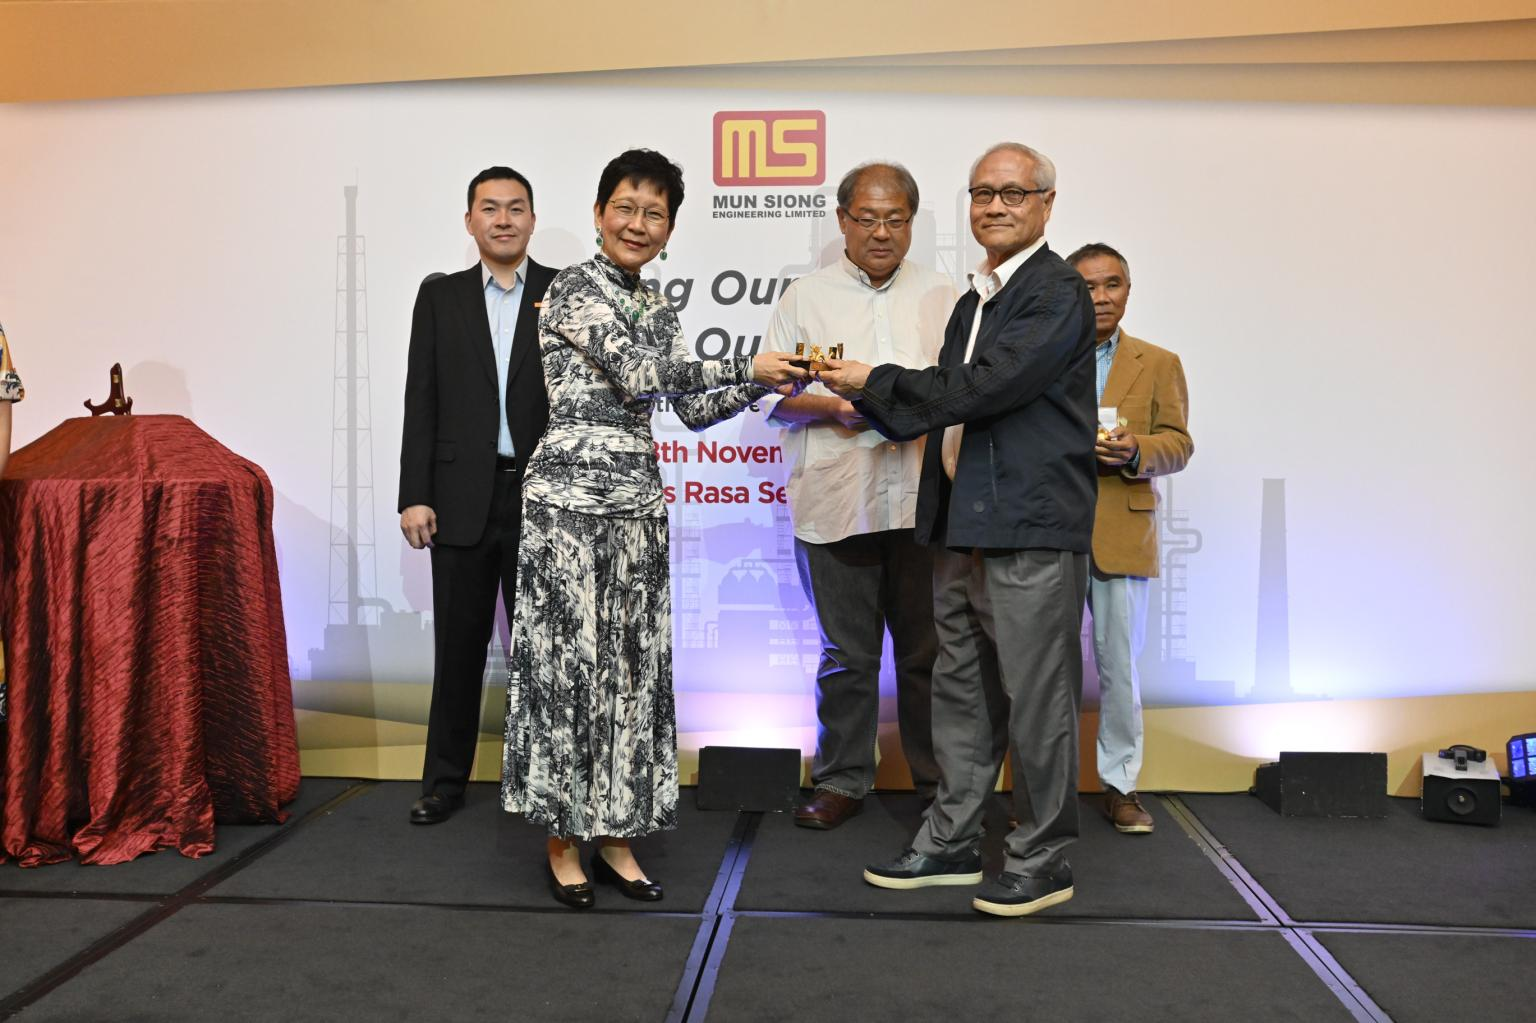 Independent Director, Dr. Lau Teik Soon receiving a token of appreciation from Executive Chairlady of Mun Siong Engineering Limited.